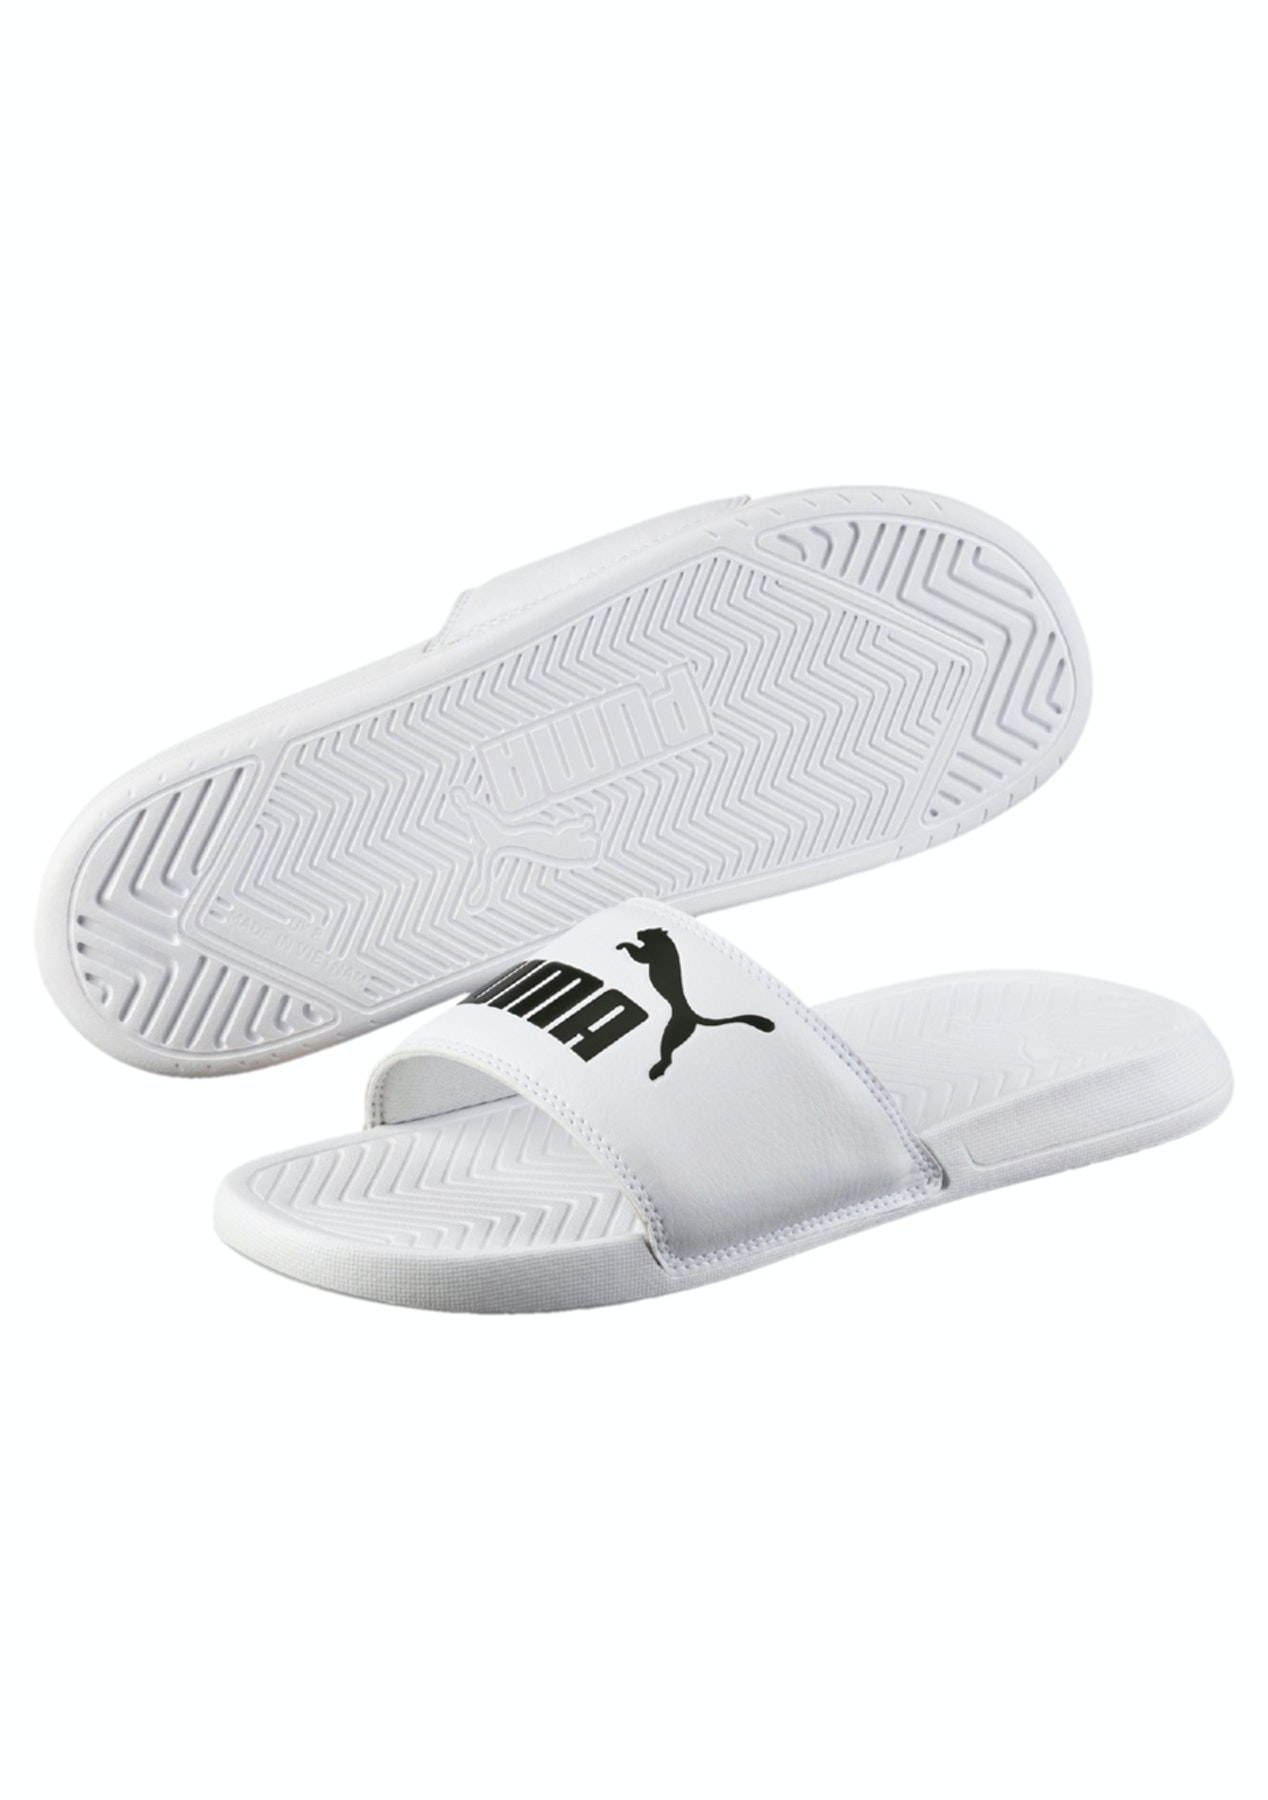 be82744693cc Puma - Popcat Slides White-Black - Womens - Summer Slides and Sandals -  Onceit